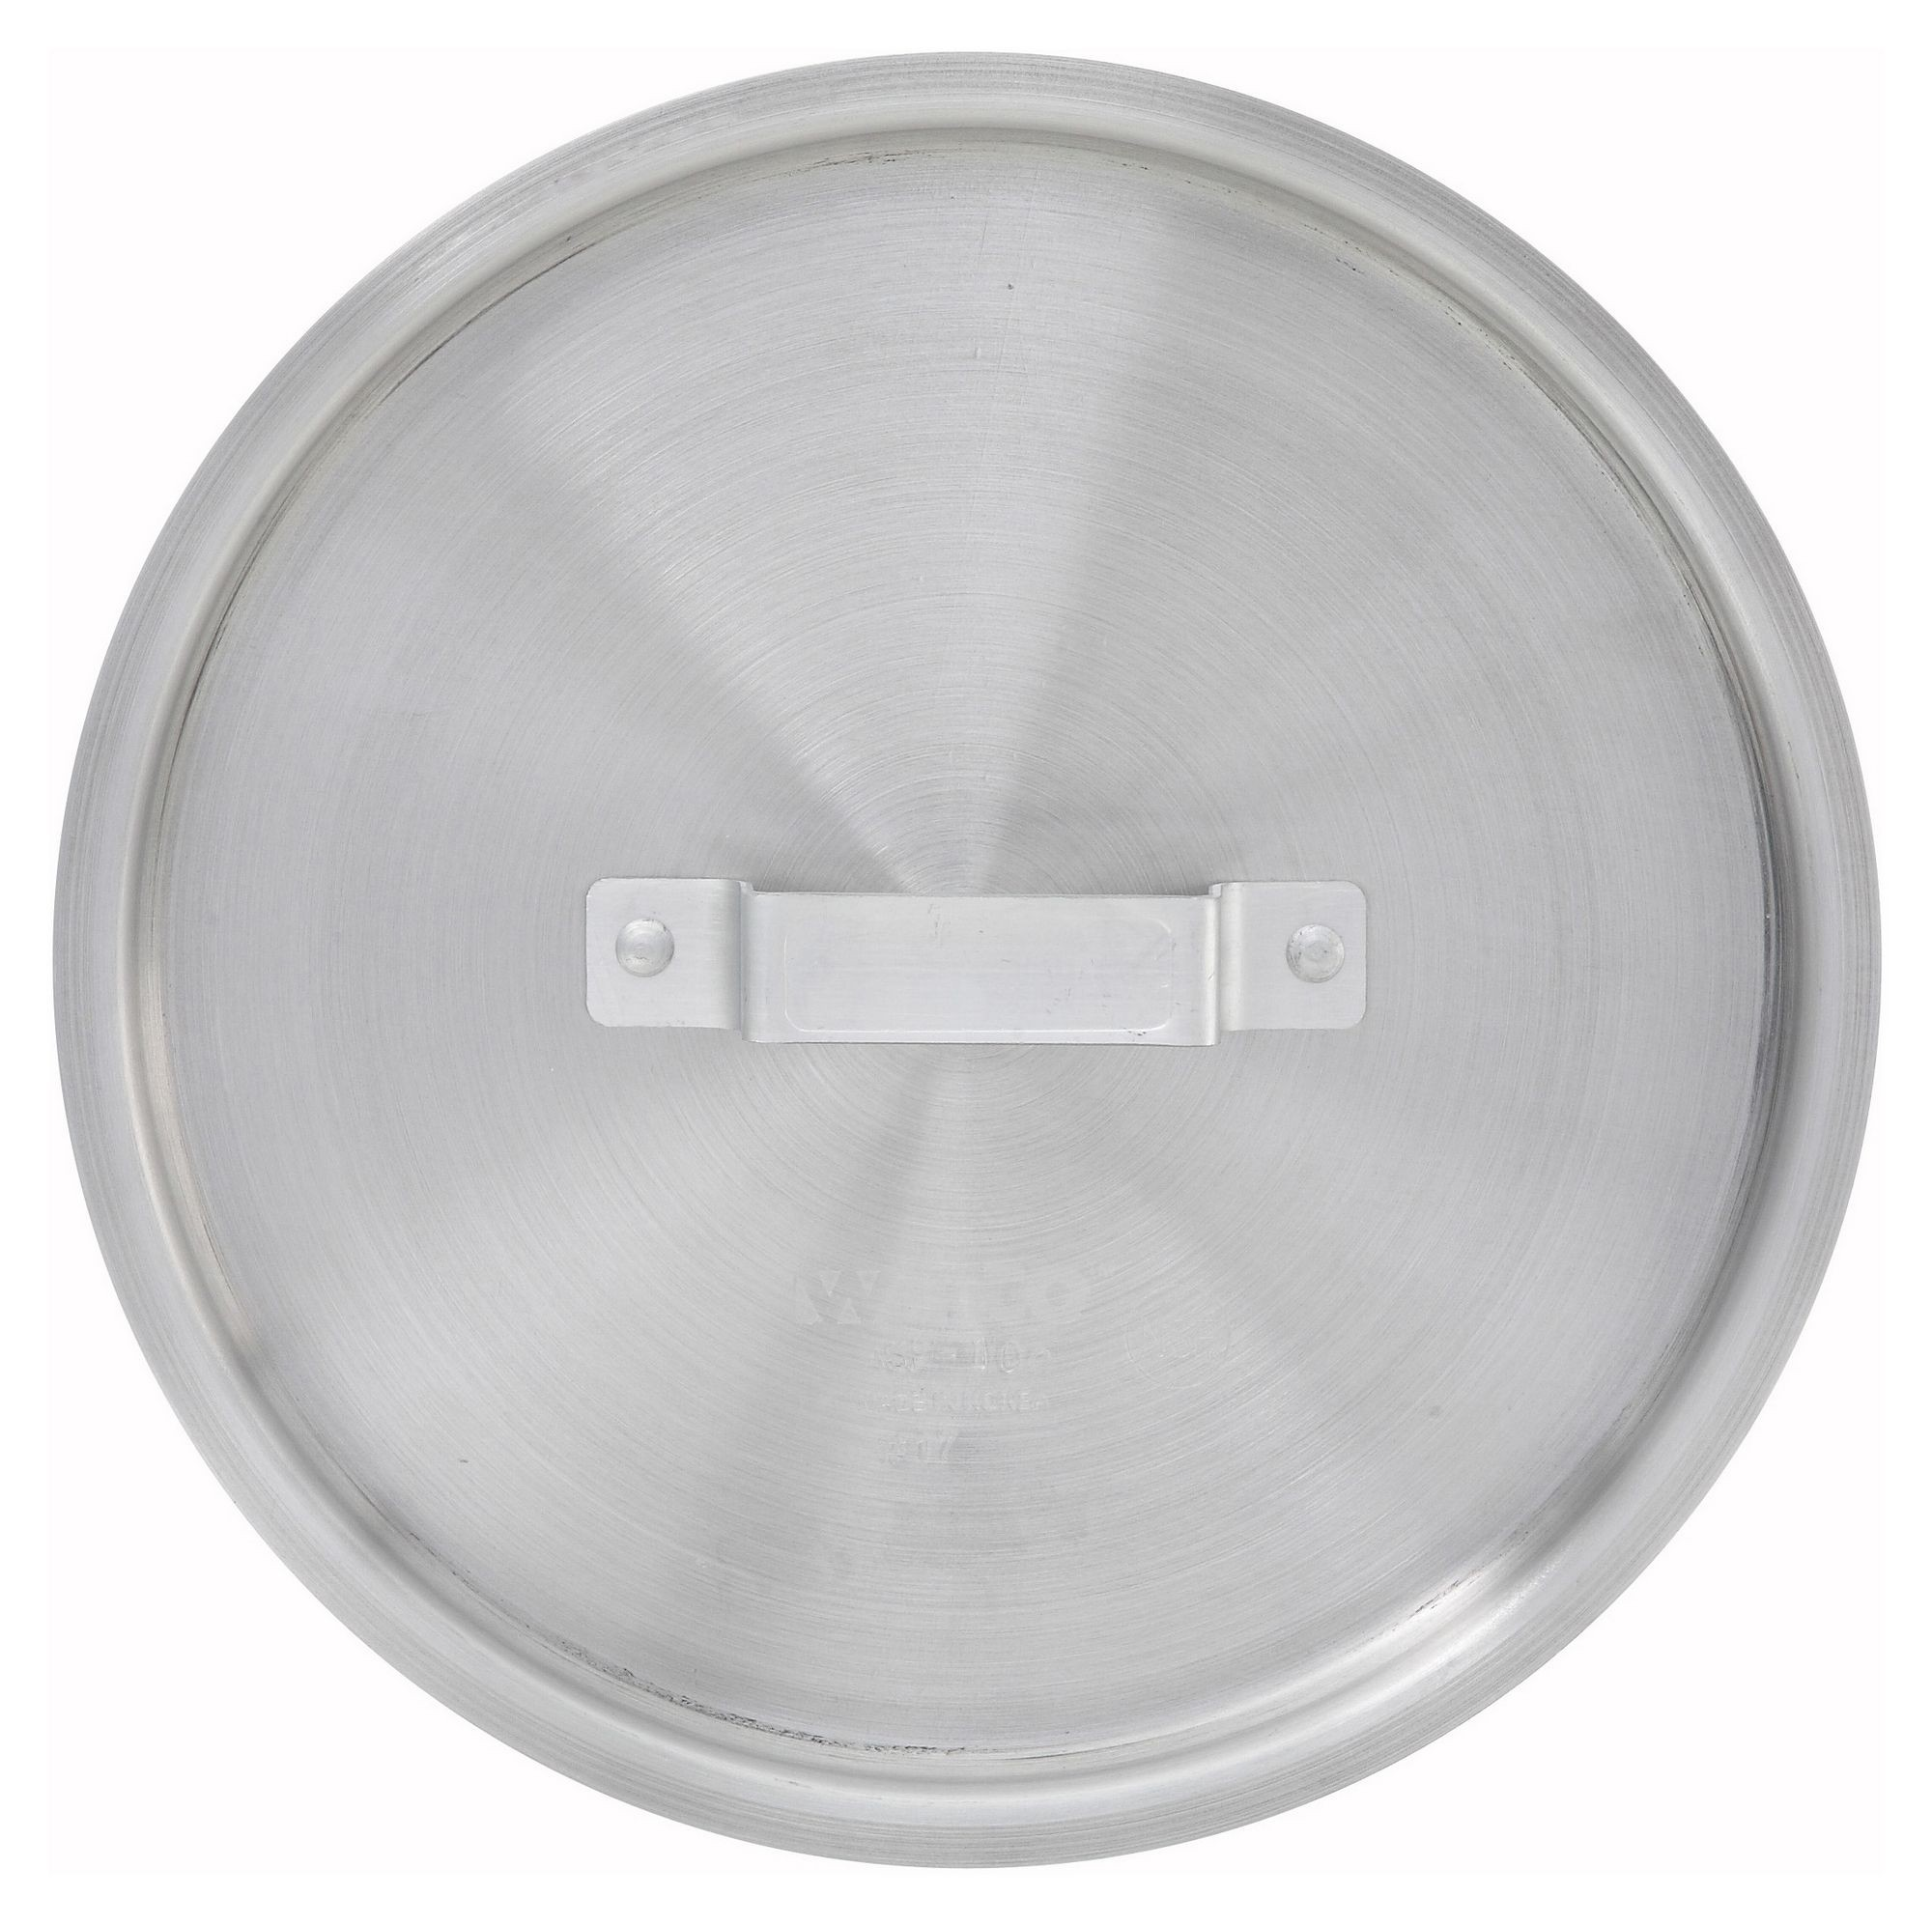 Winco ASP-7C Aluminum Cover for 7 Qt. Sauce Pan